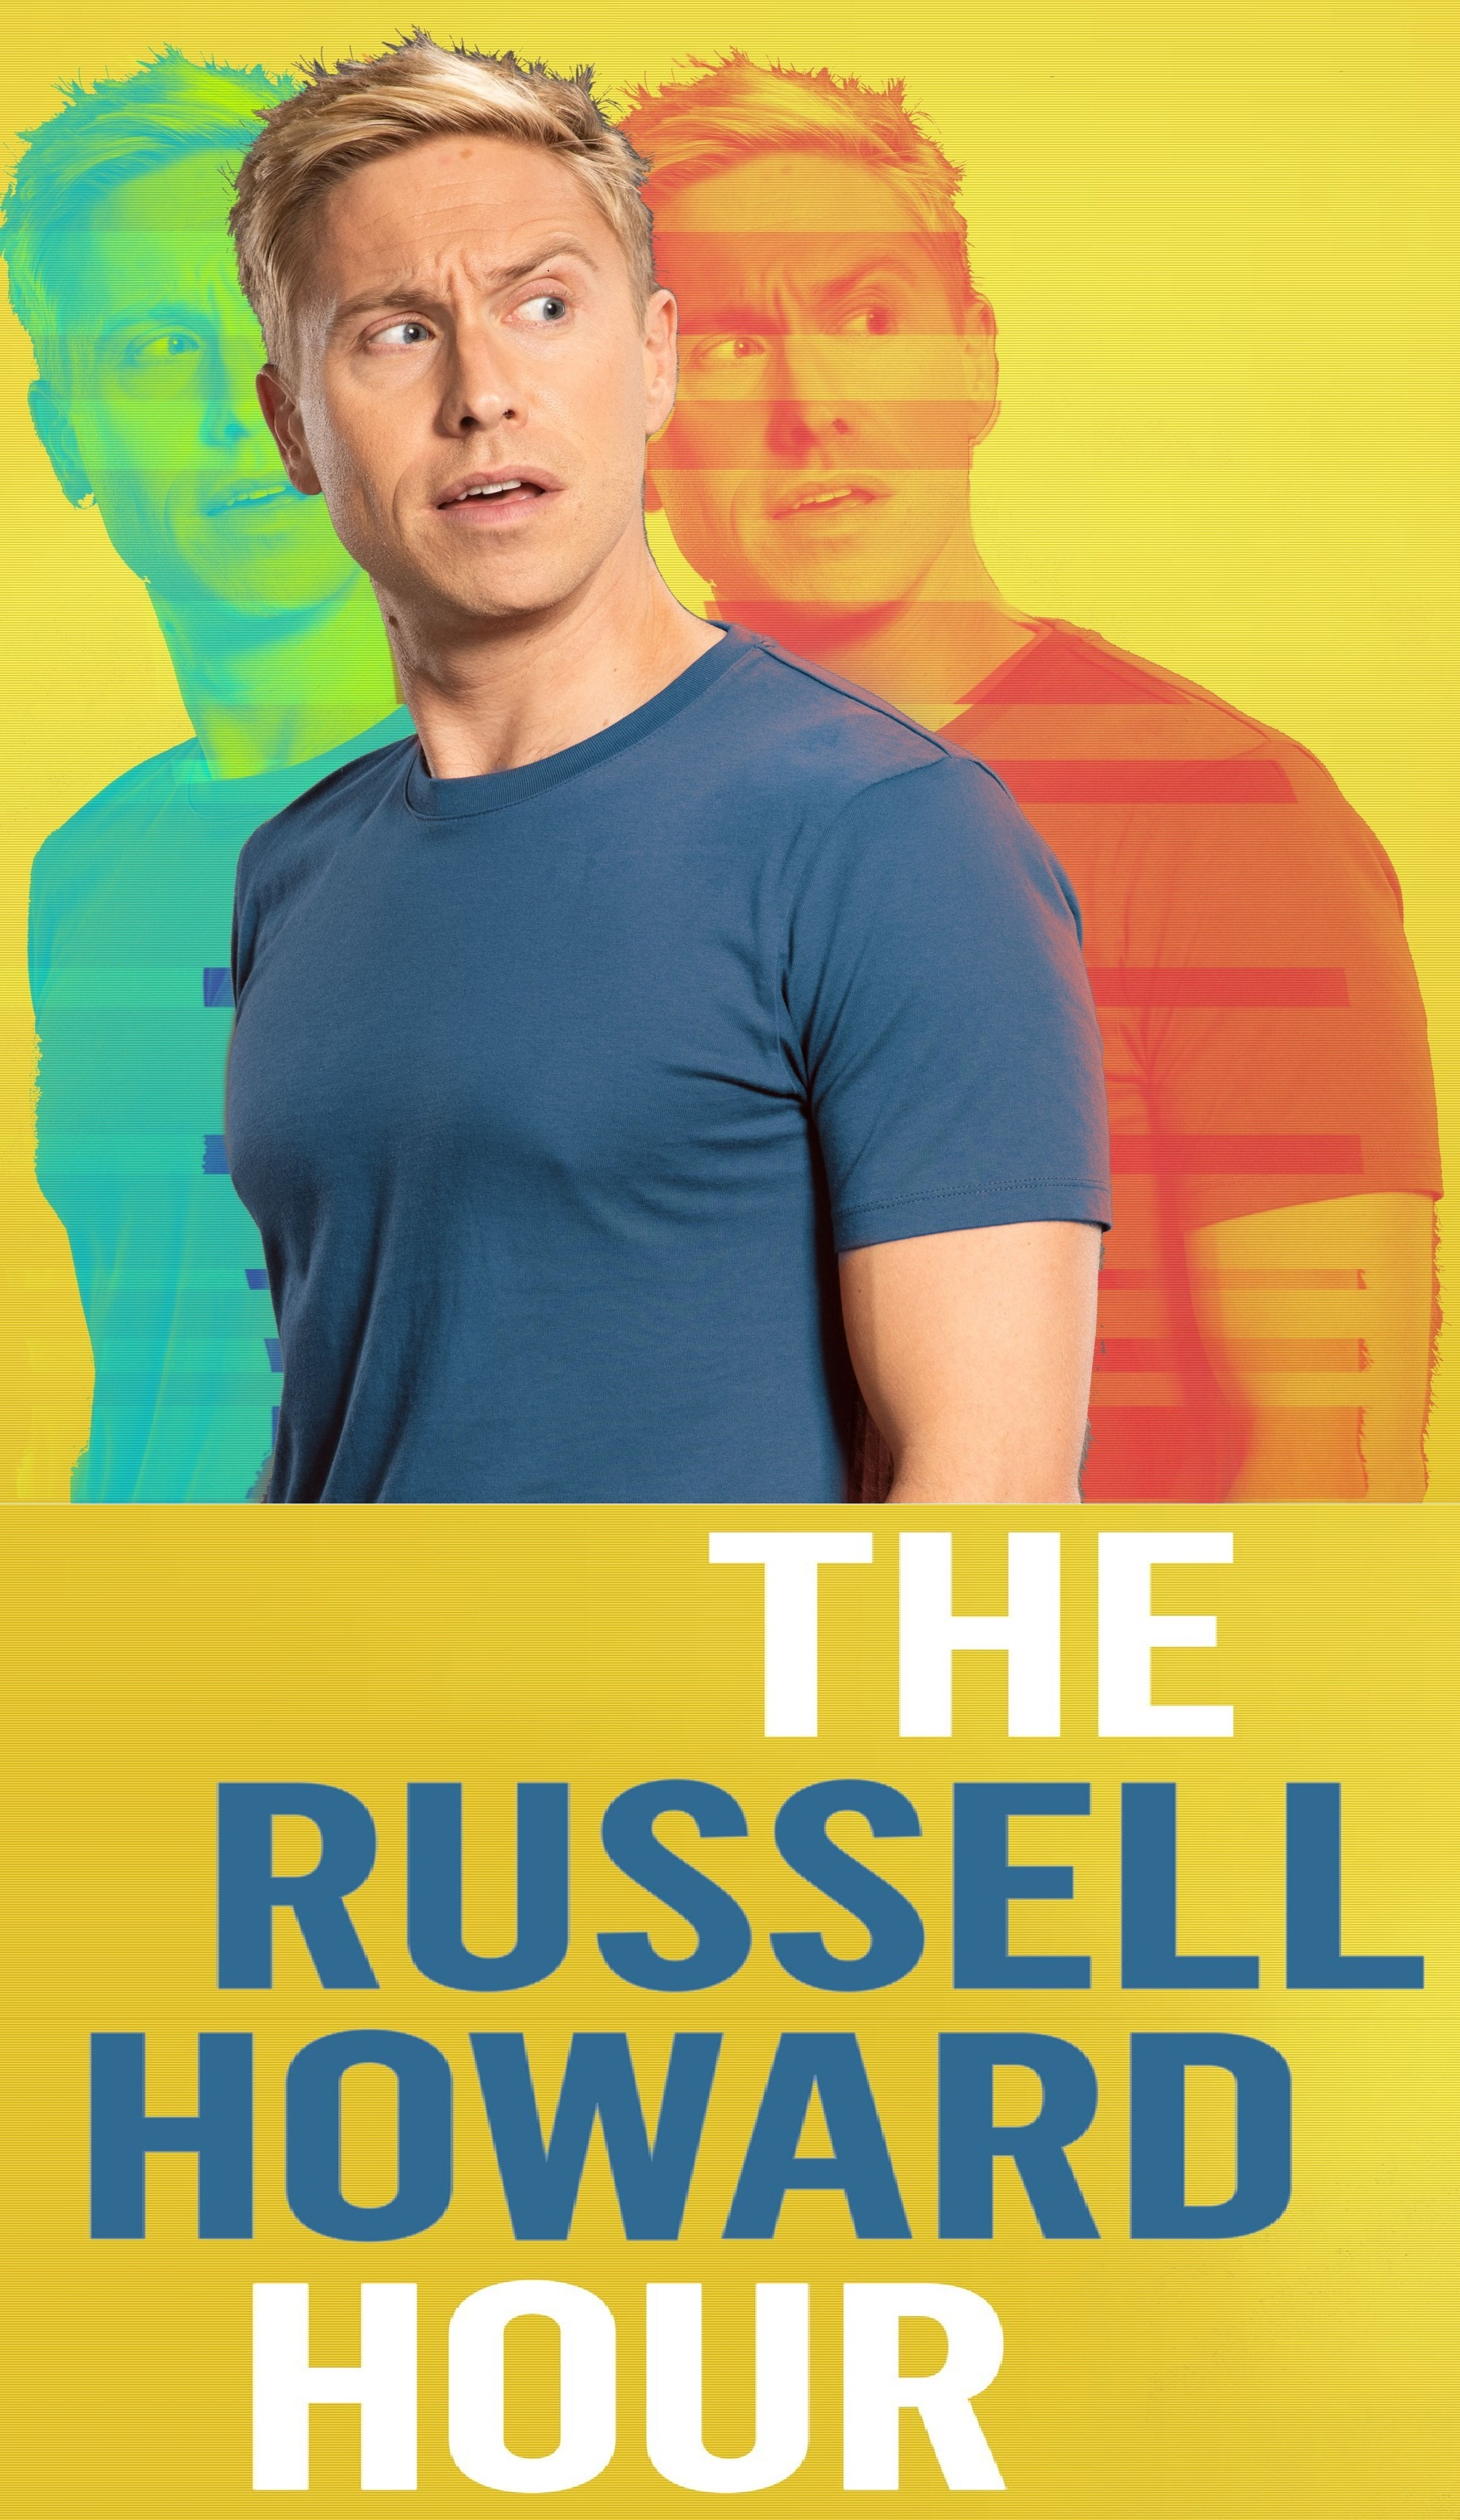 The Russell Howard Hour - Season 4 Episode 2